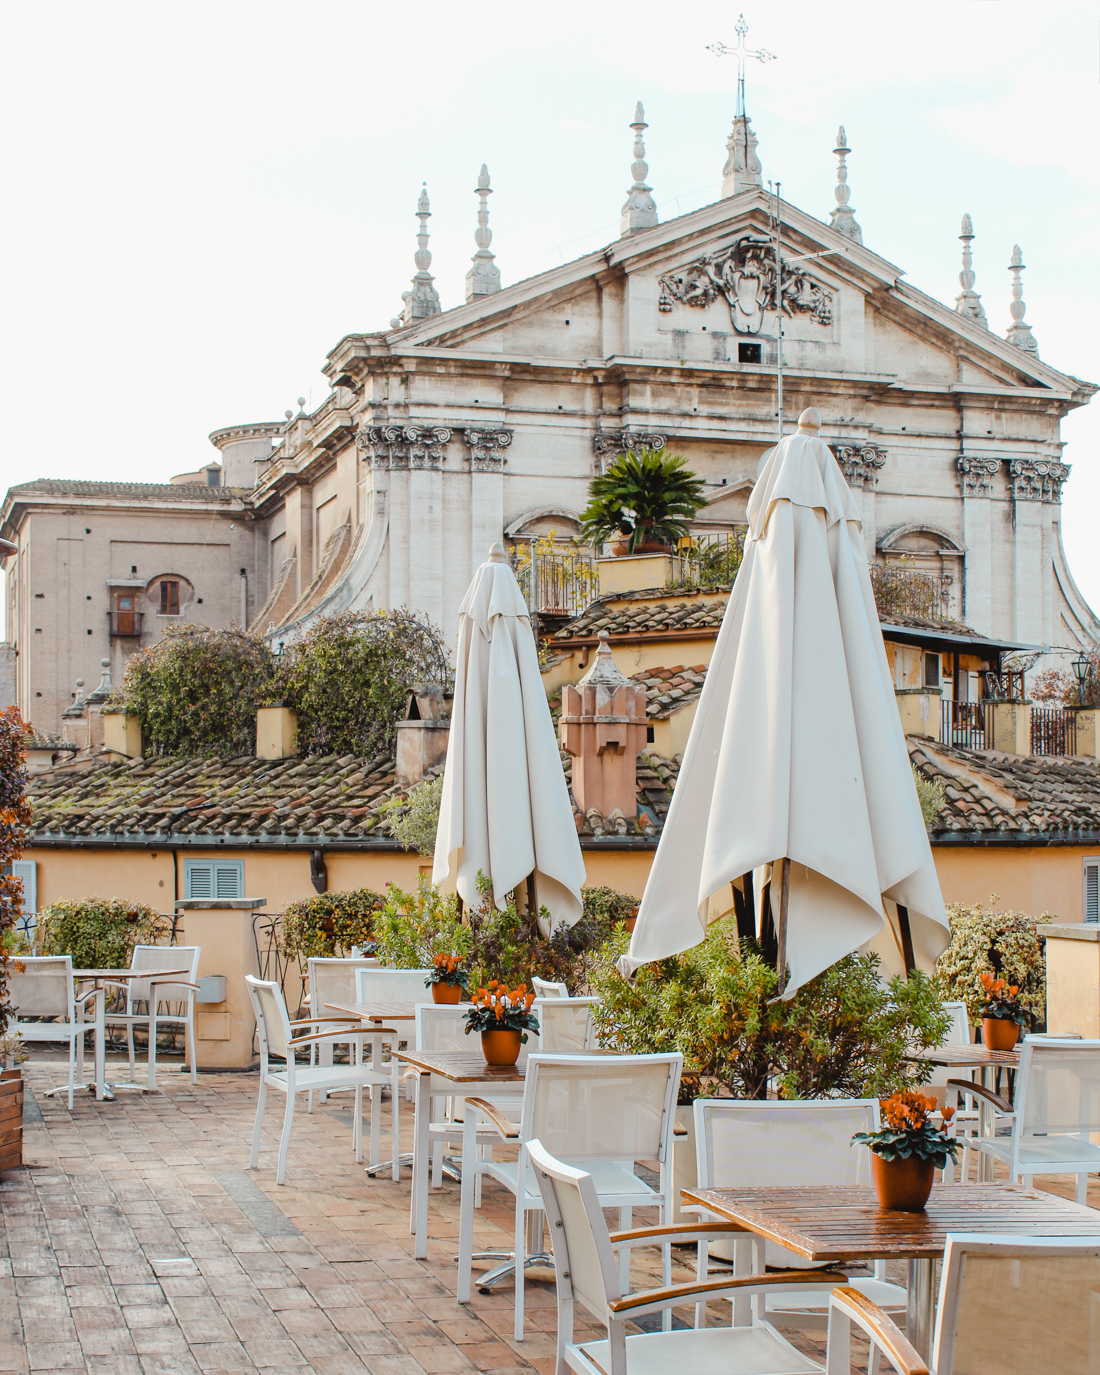 Hotels in Rome: What to expect and tips for booking the best hotel. Travel Tips | Italy Hotels | #italy #traveltips